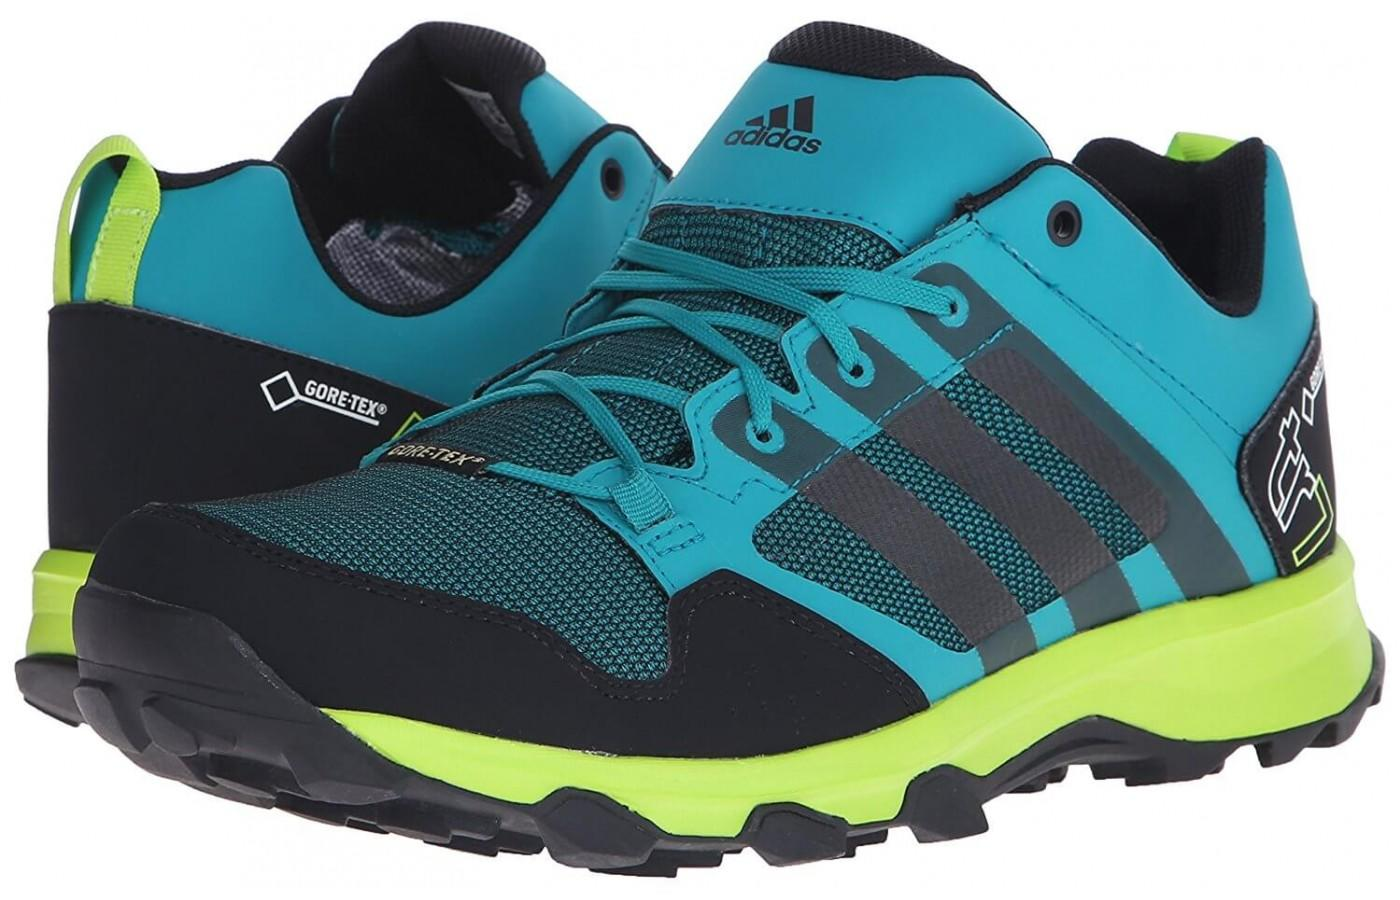 Gore-Tex technology keeps the foot dry and comfortable